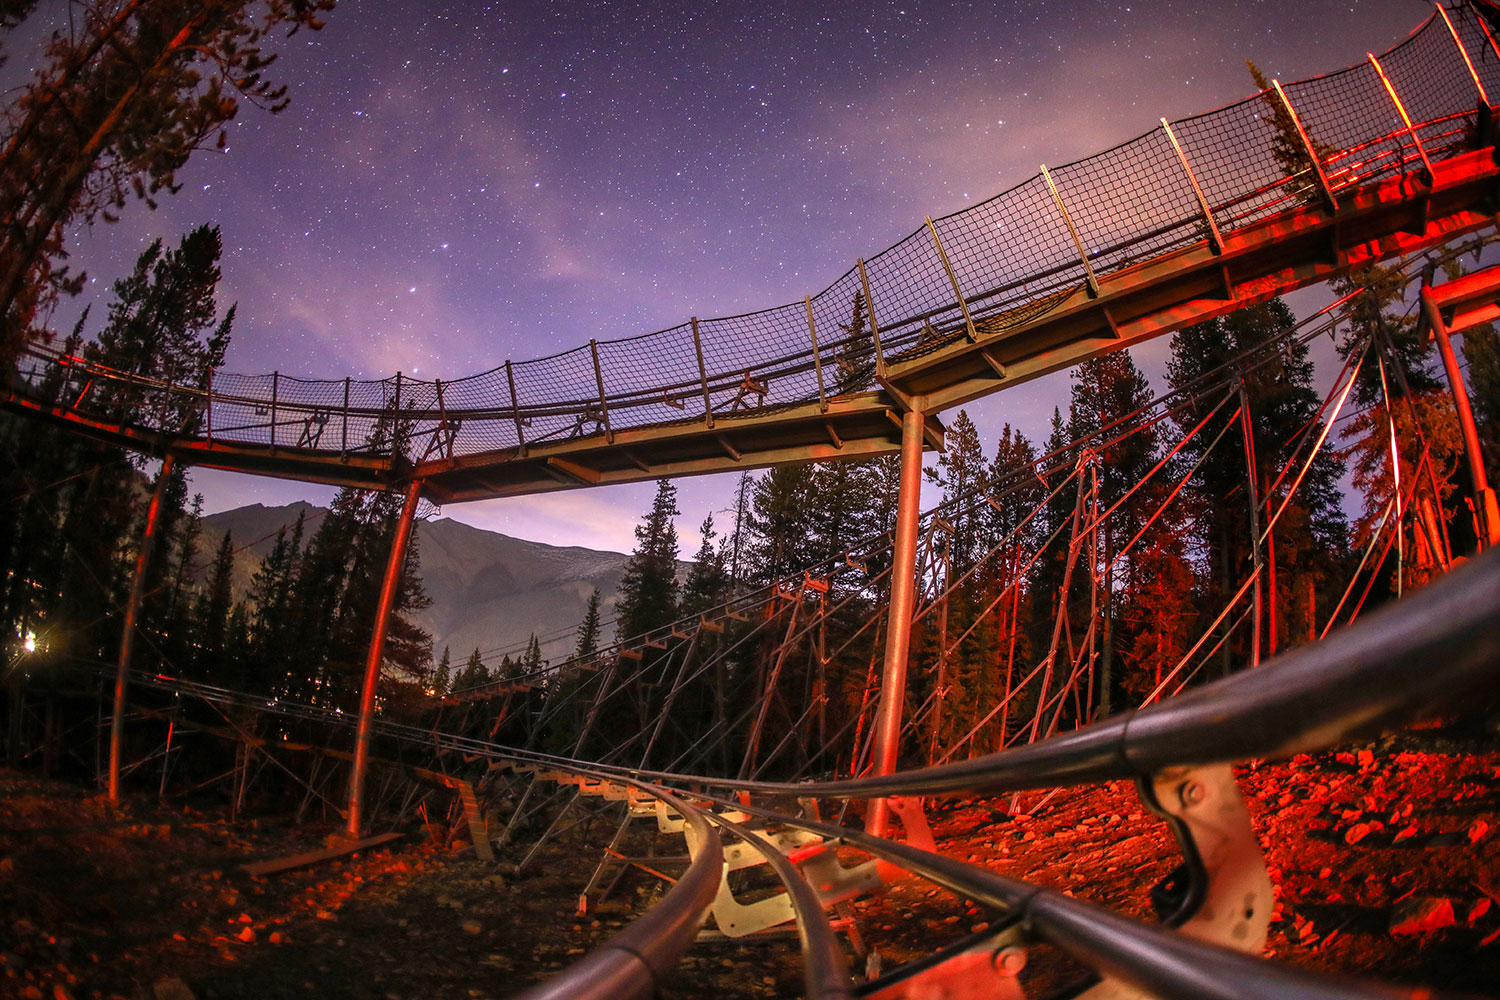 Rocky Mountain Coaster at Copper Mountain at night